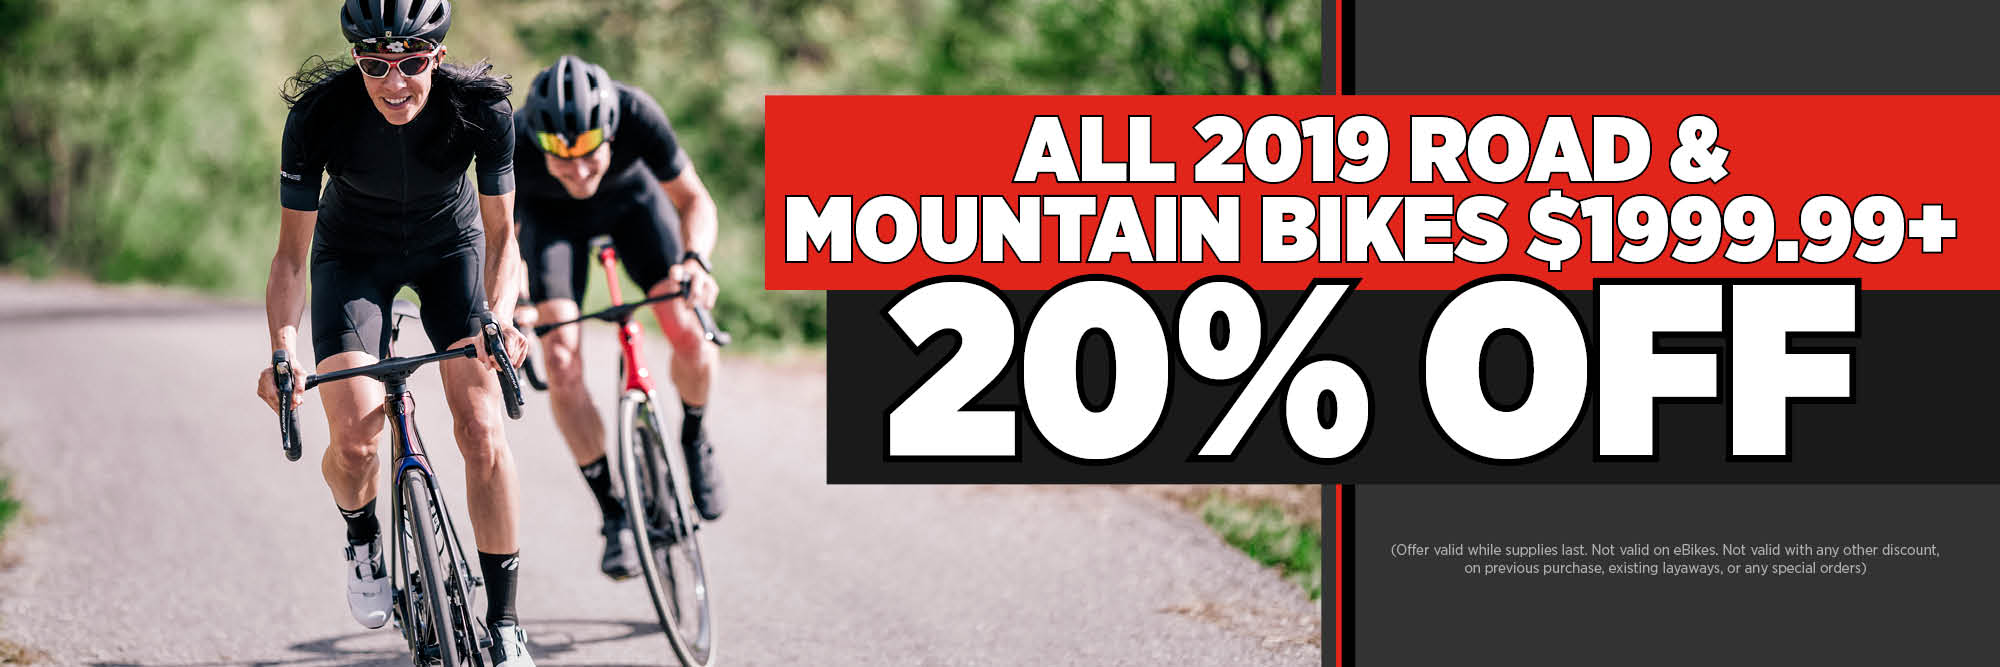 High End Bikes At Low Prices